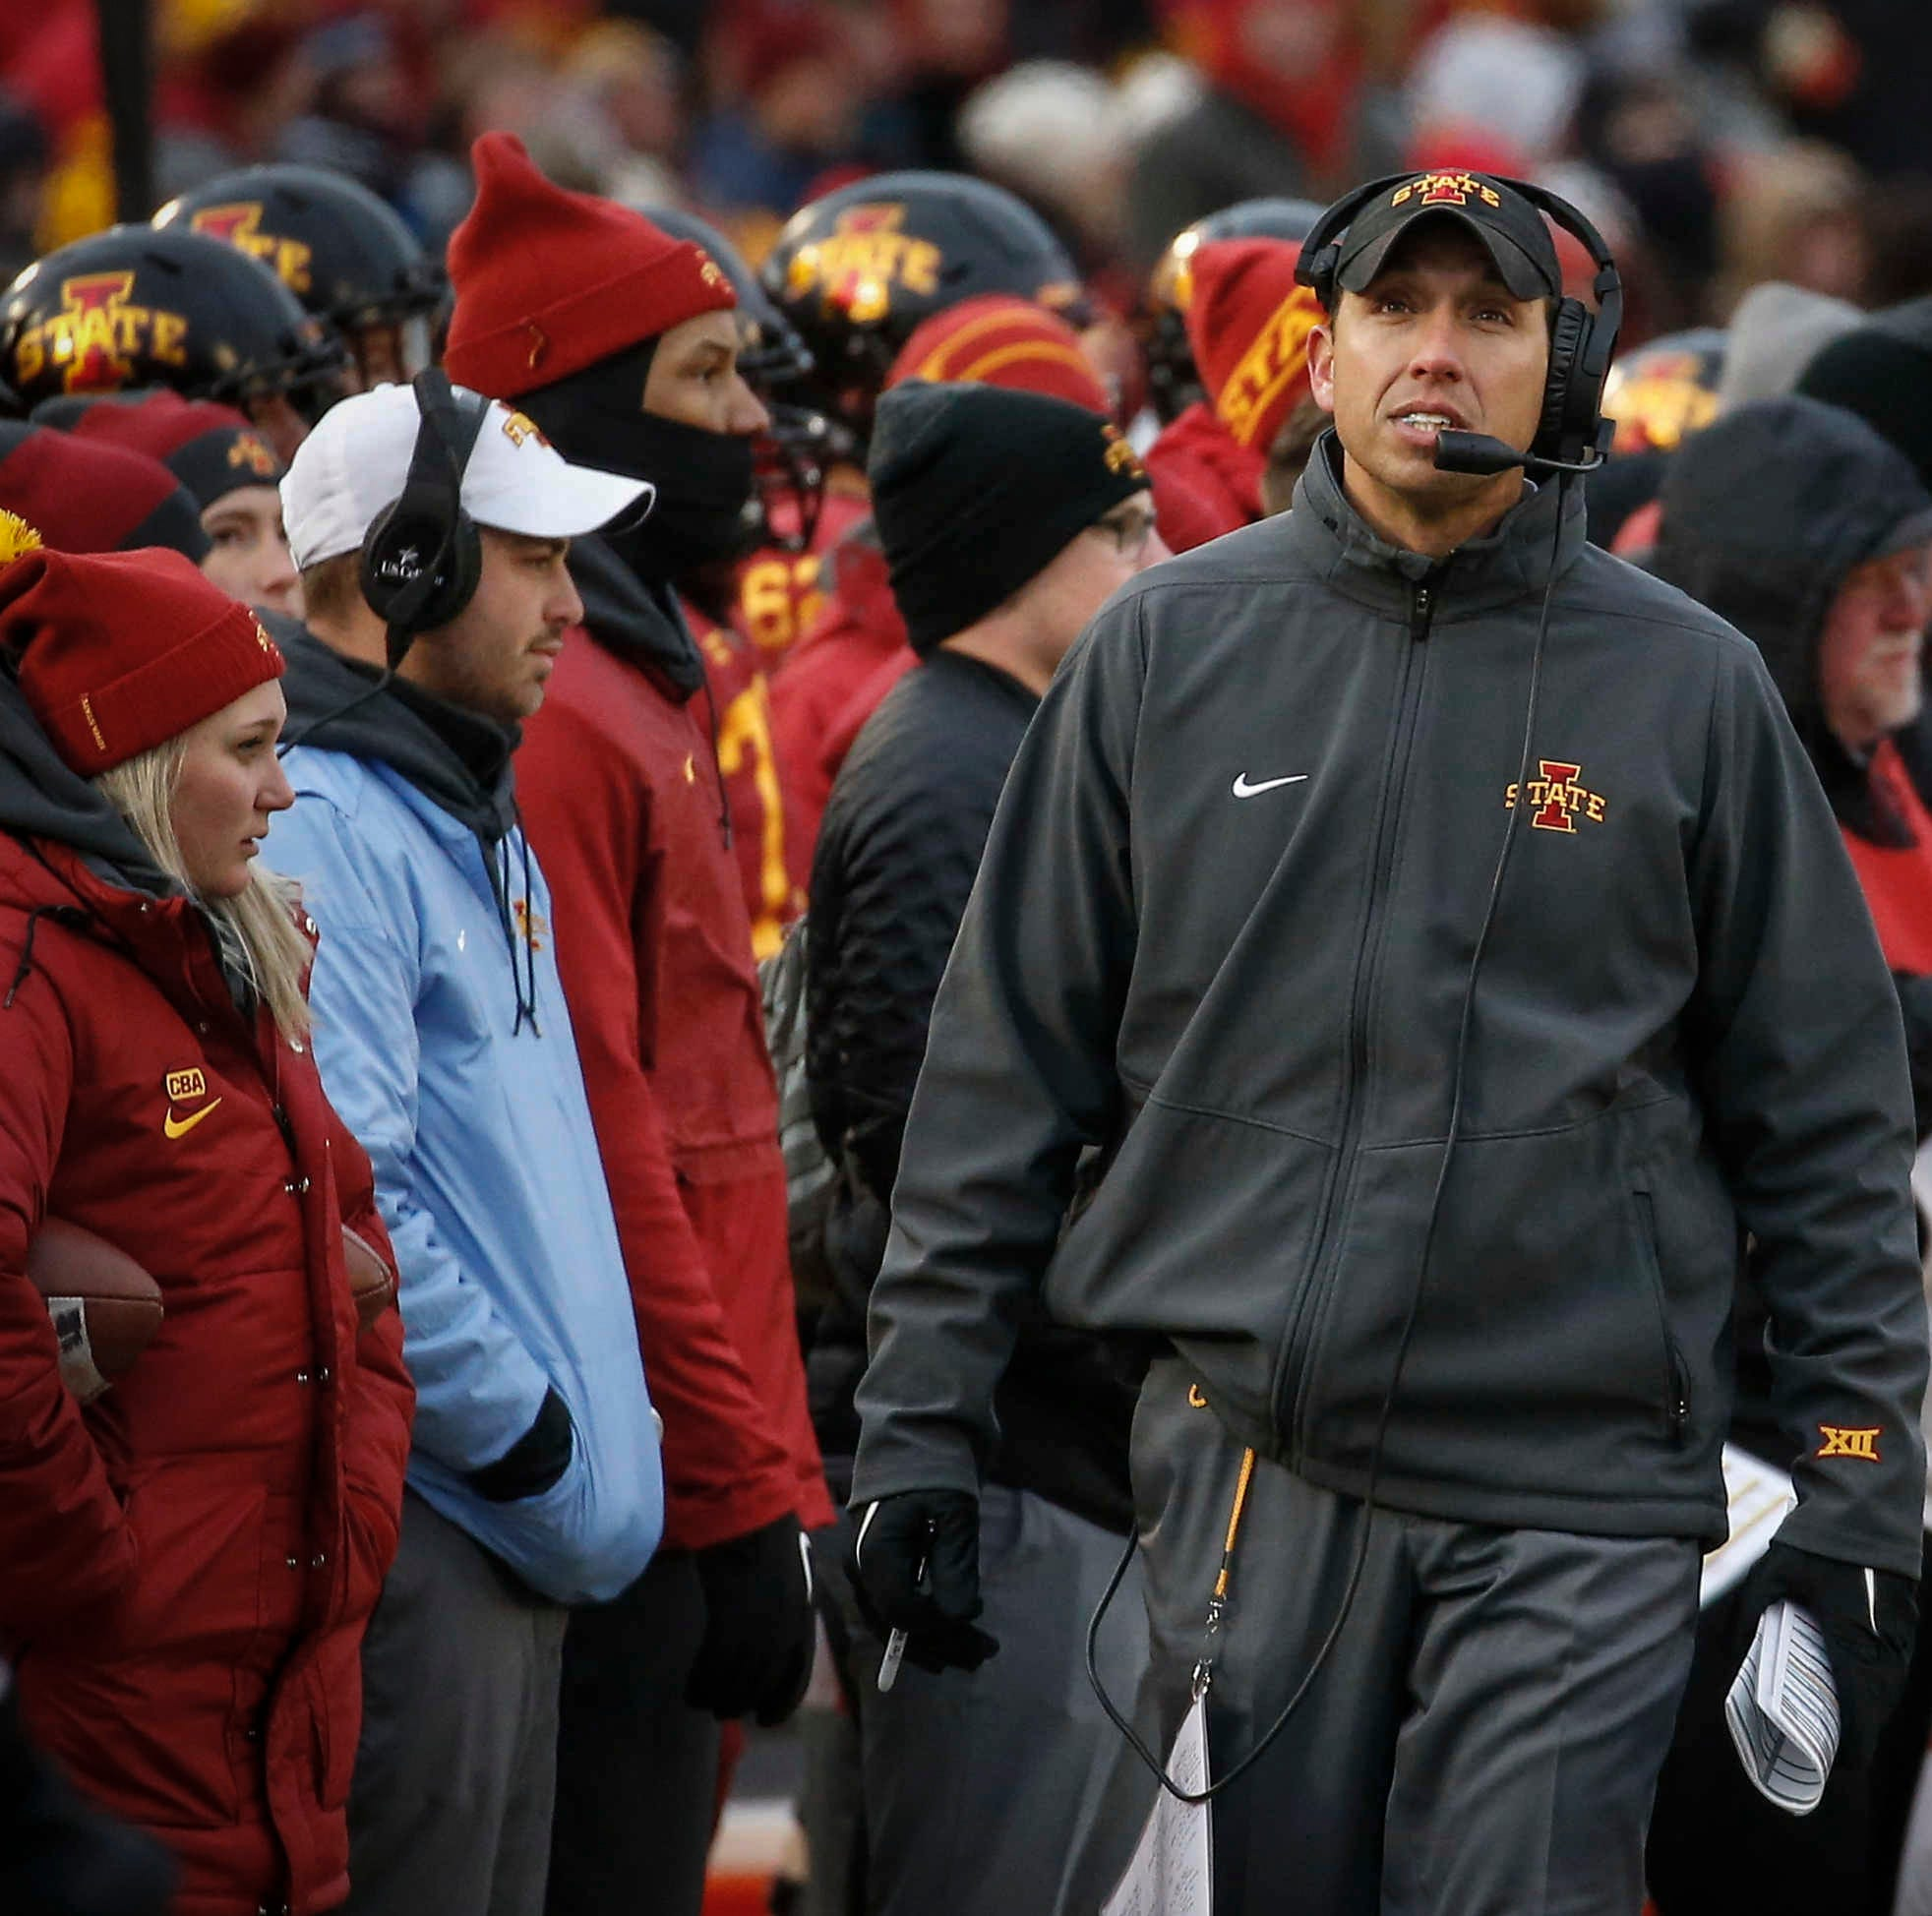 How to watch Saturday's Iowa State vs. Texas game